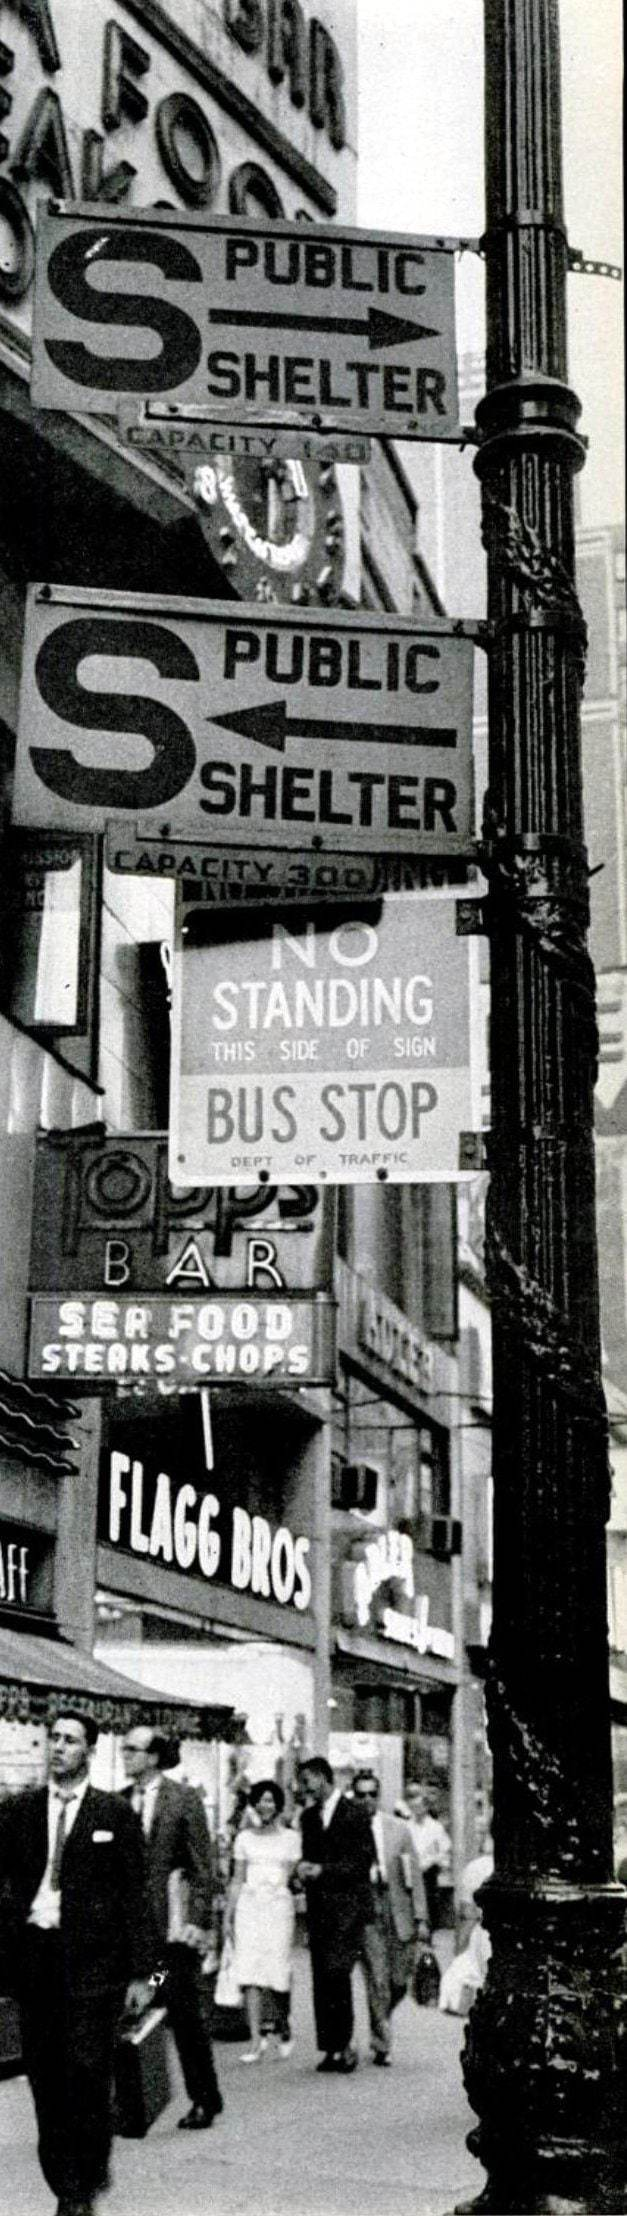 Public fallout shelter signs - NYC 1961